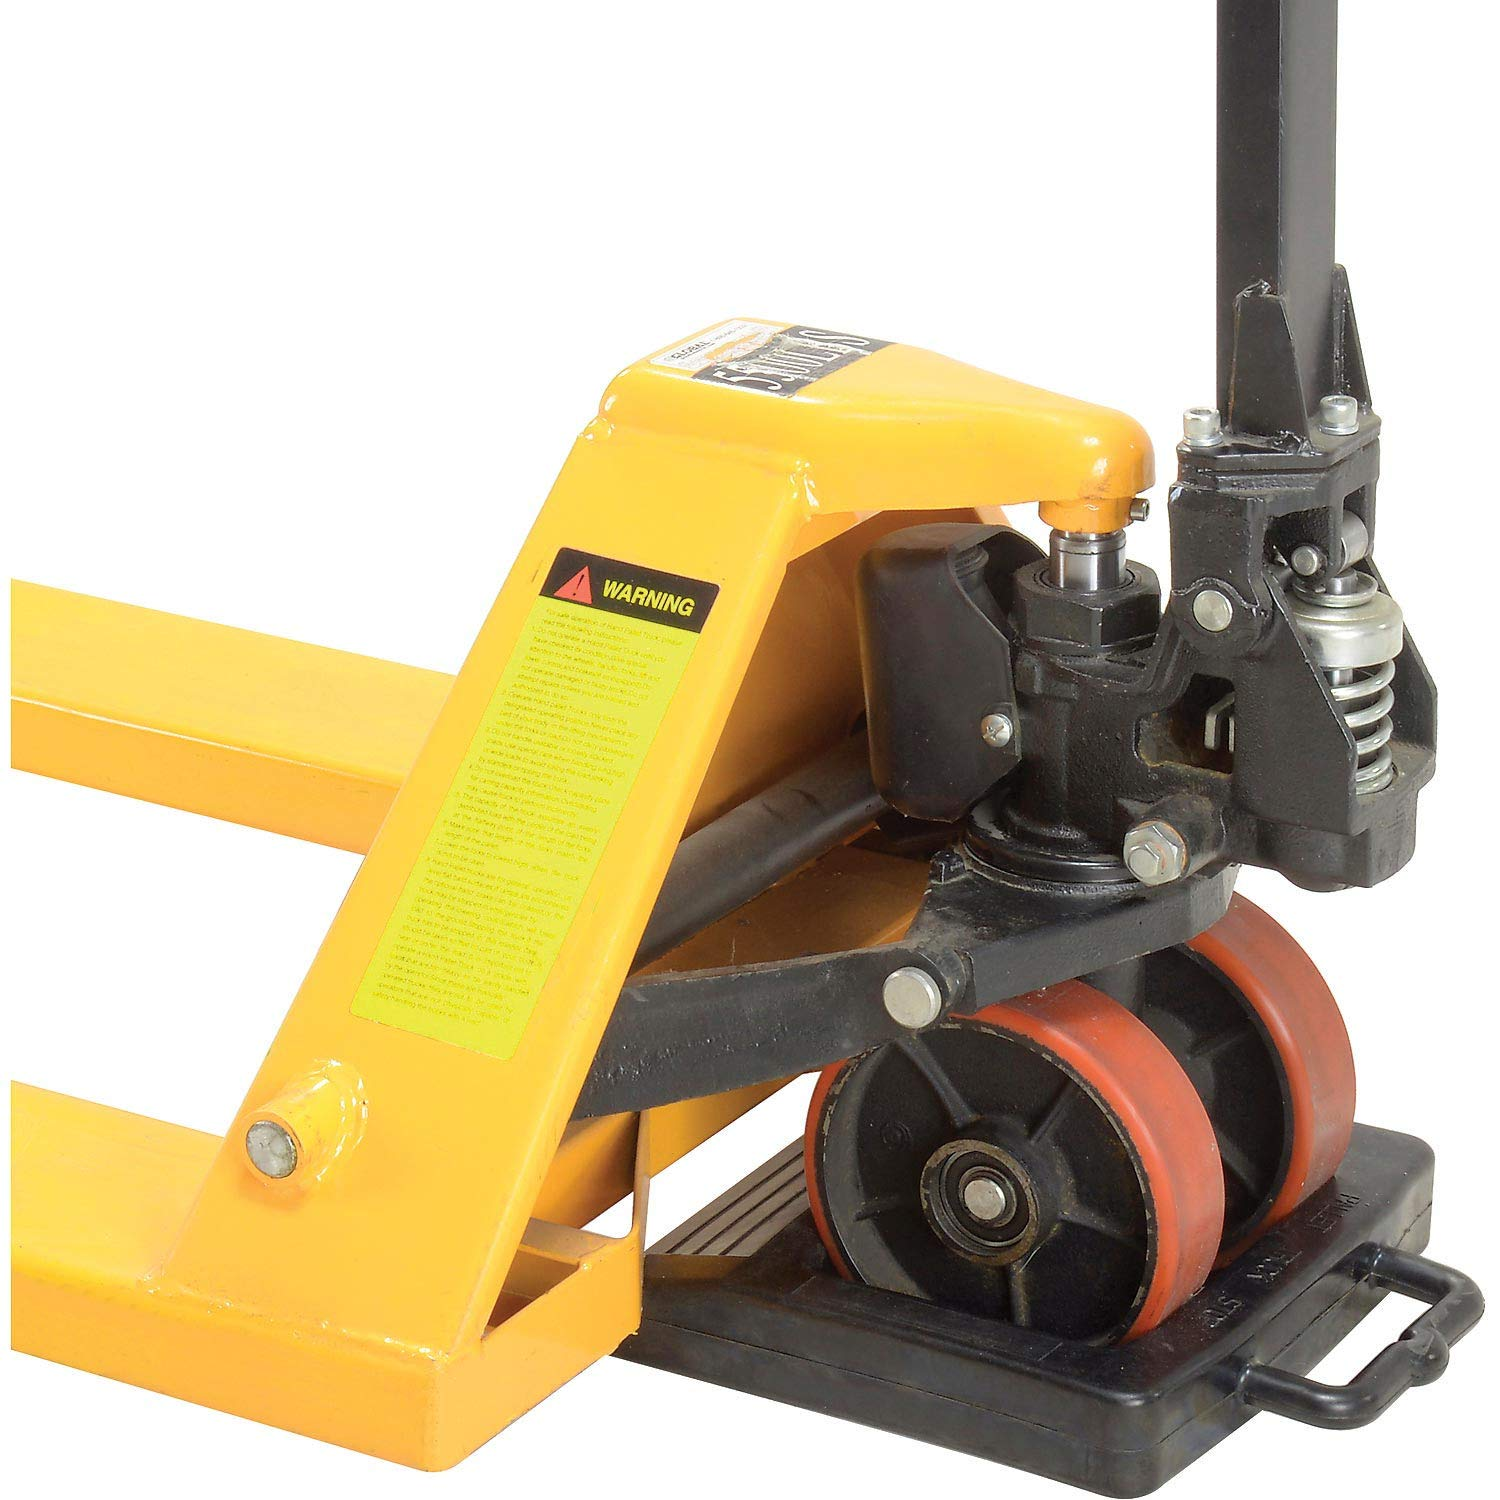 Pallet Jack Truck, 5500 Lb. Capacity, 21 x 48 & Pallet Chock Combo by Global Industrial (Image #3)